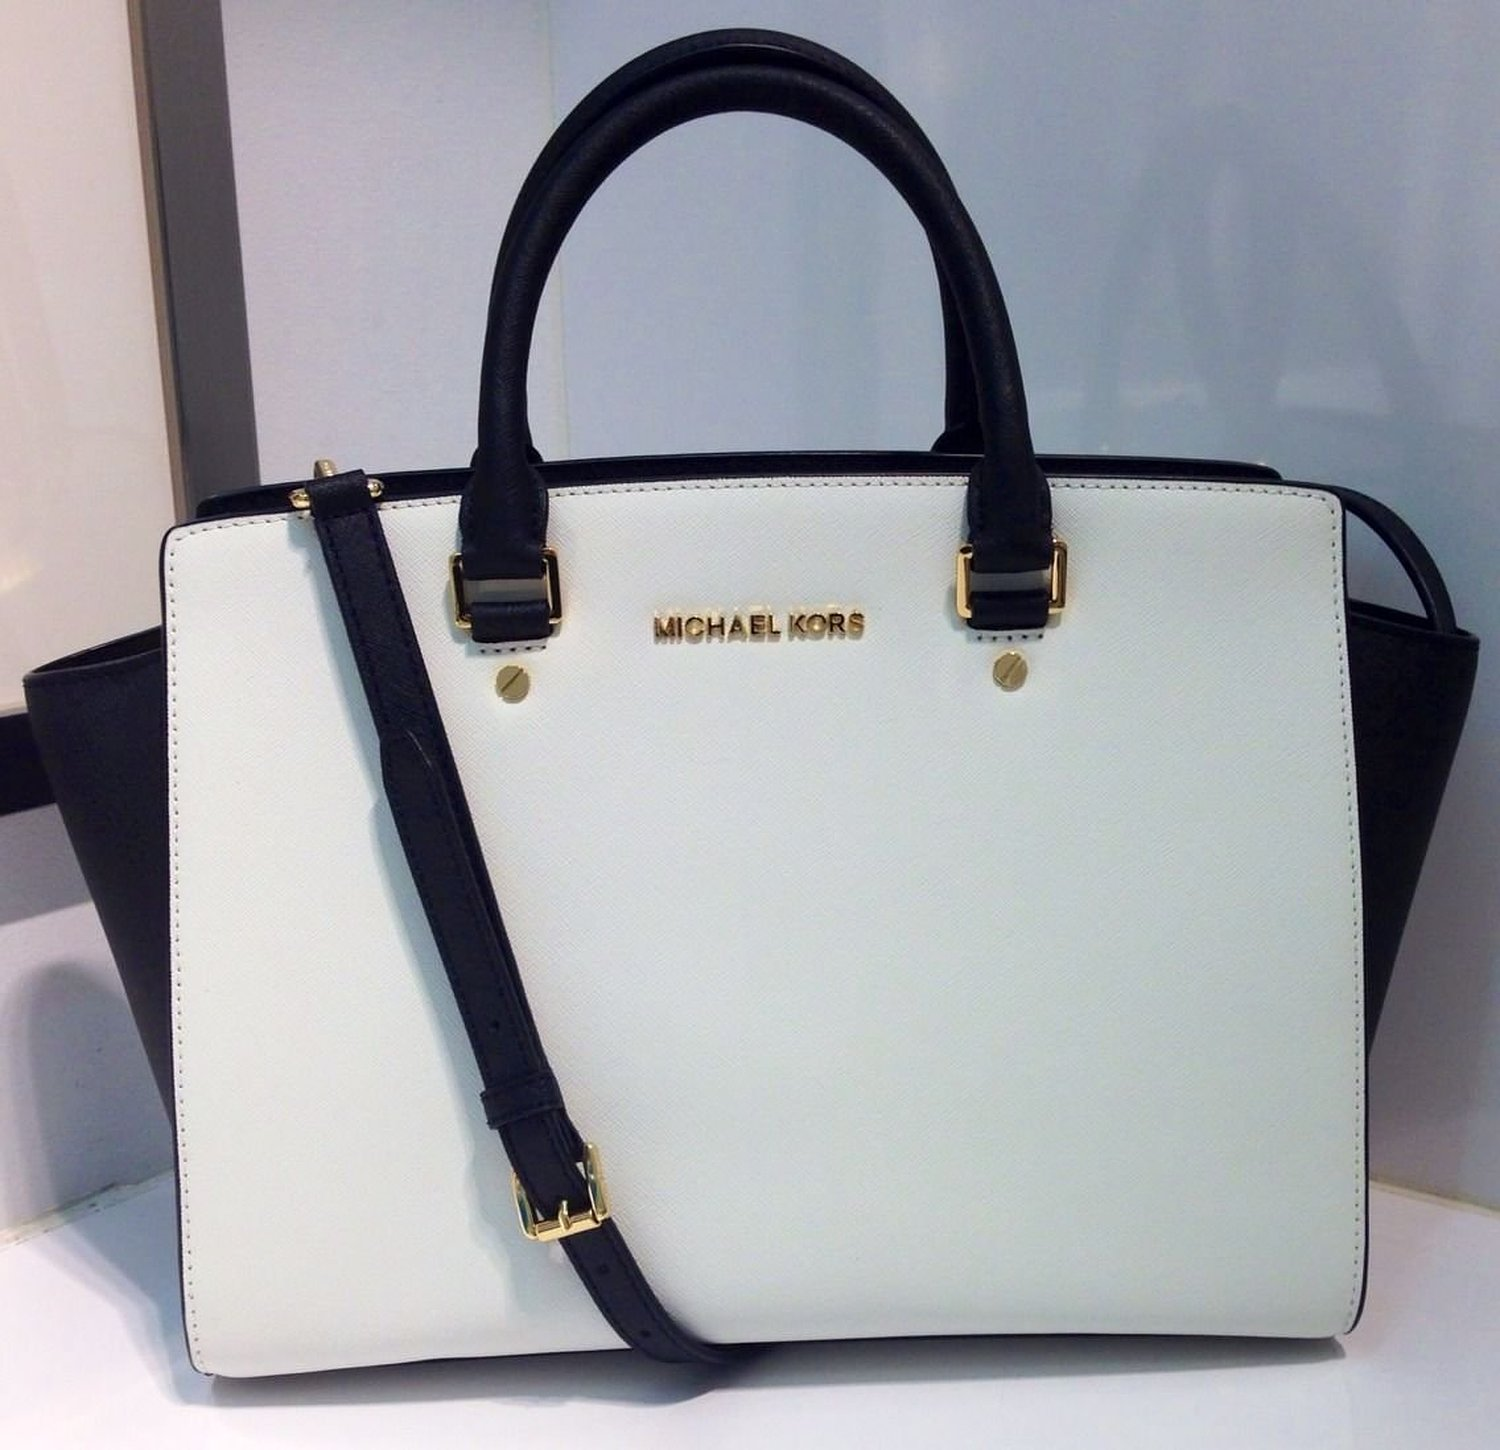 Amazon.com: Michael Kors Selma Large White / Black Top Zip Leather Satchel 30T3MLMS7T NEW: Shoes